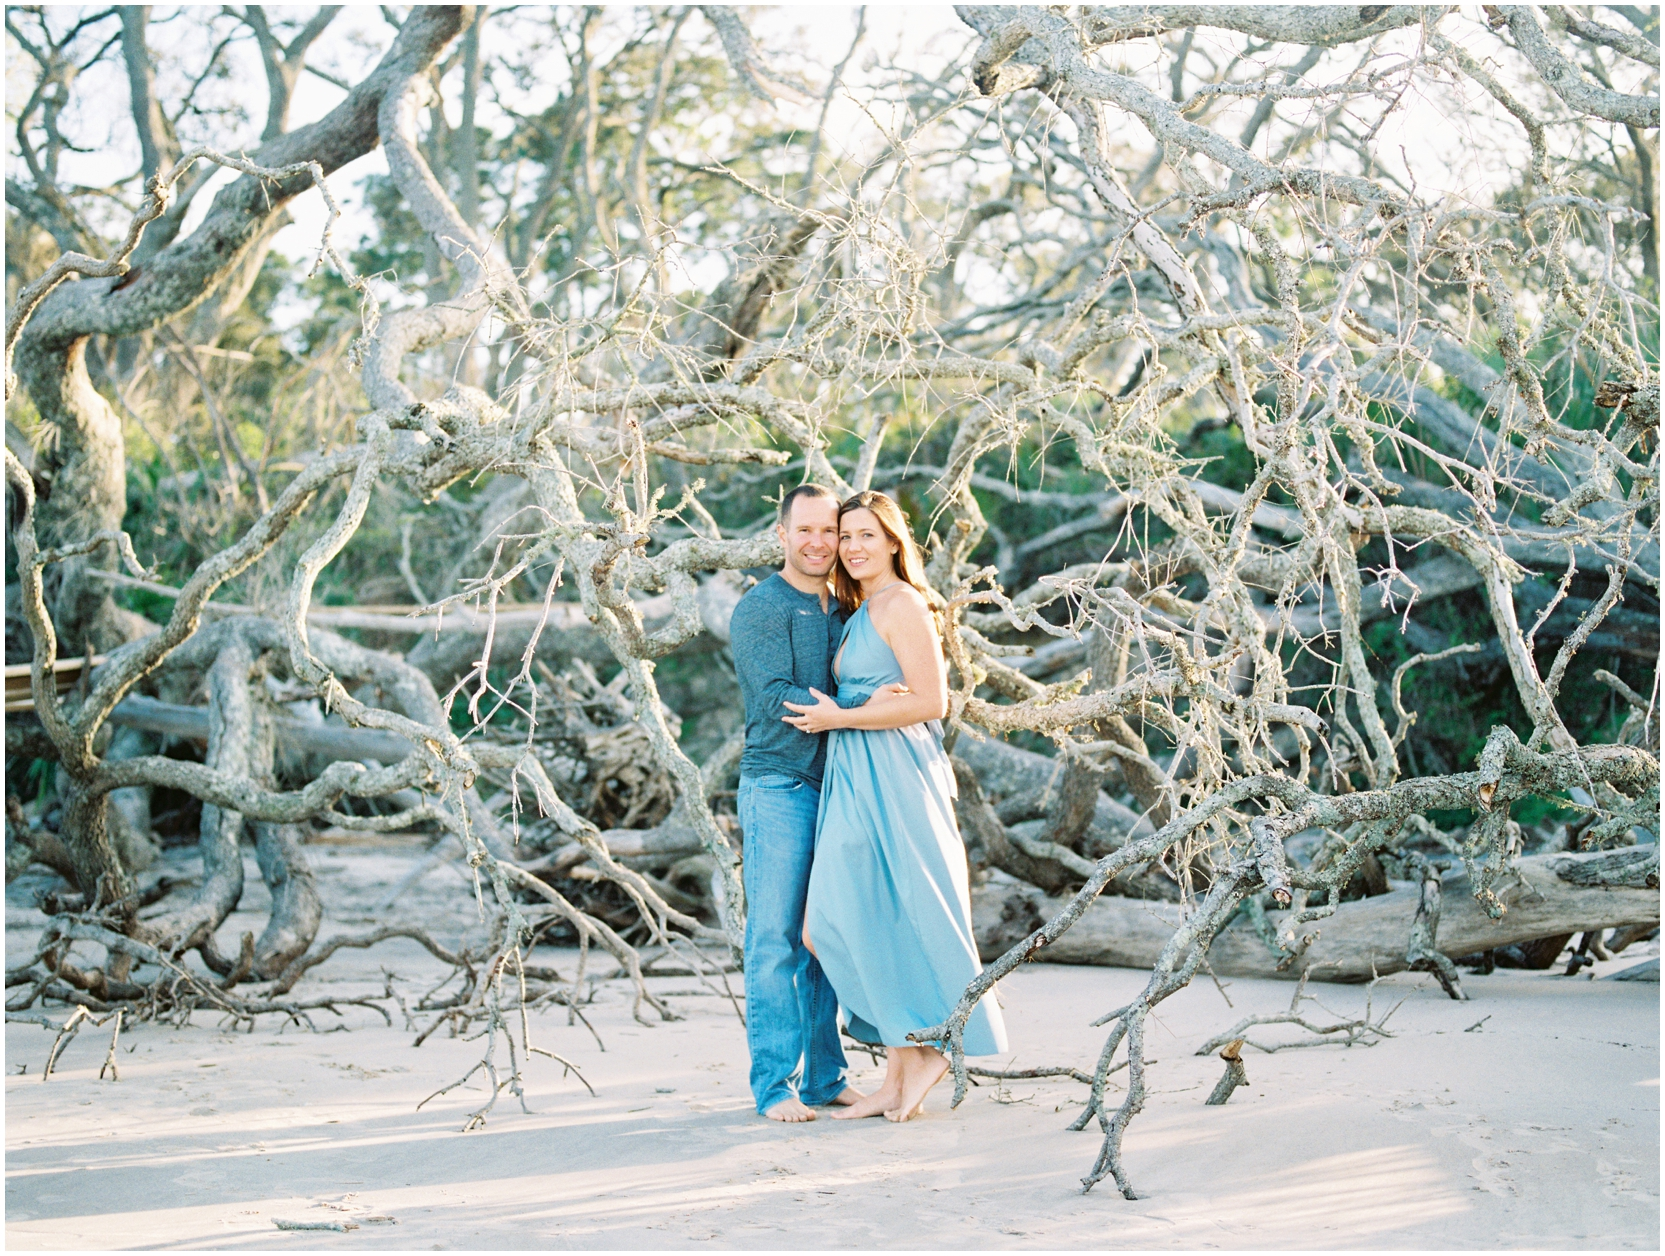 Lisa Silva Photography -Engagement Session at Big Talbot Island- Jacksonville and North East Florida Fine Art Film Photographer_0040.jpg